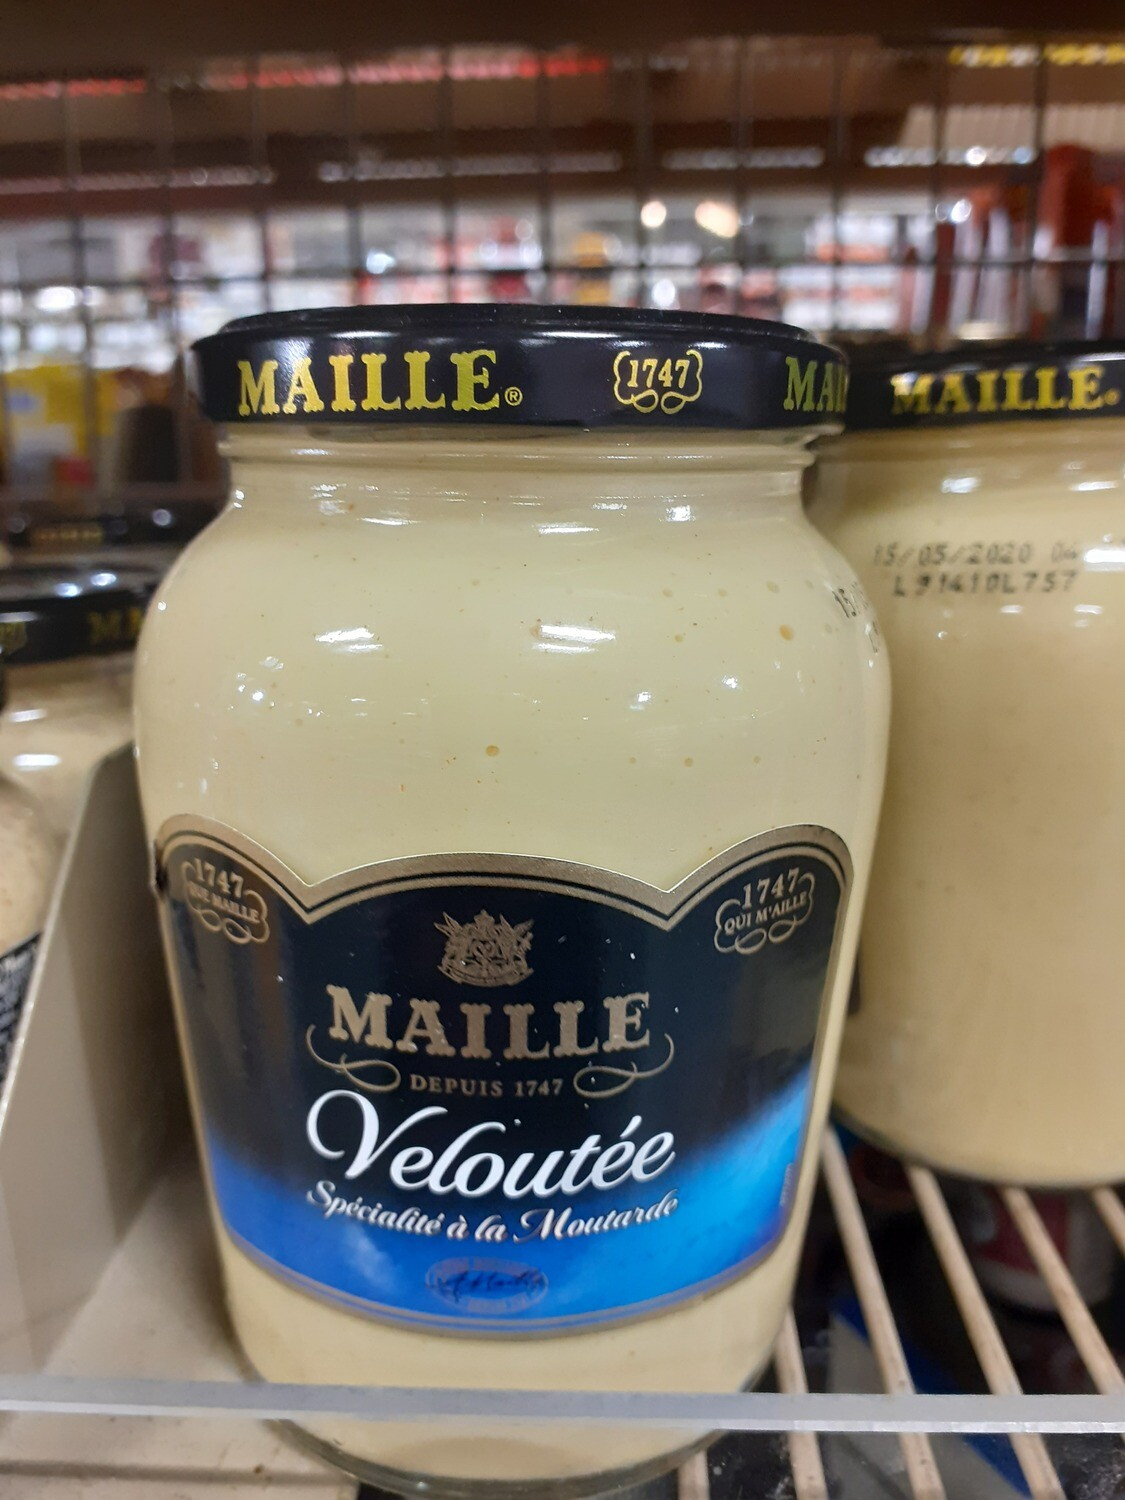 Maille Moutarde veloute 1x360g